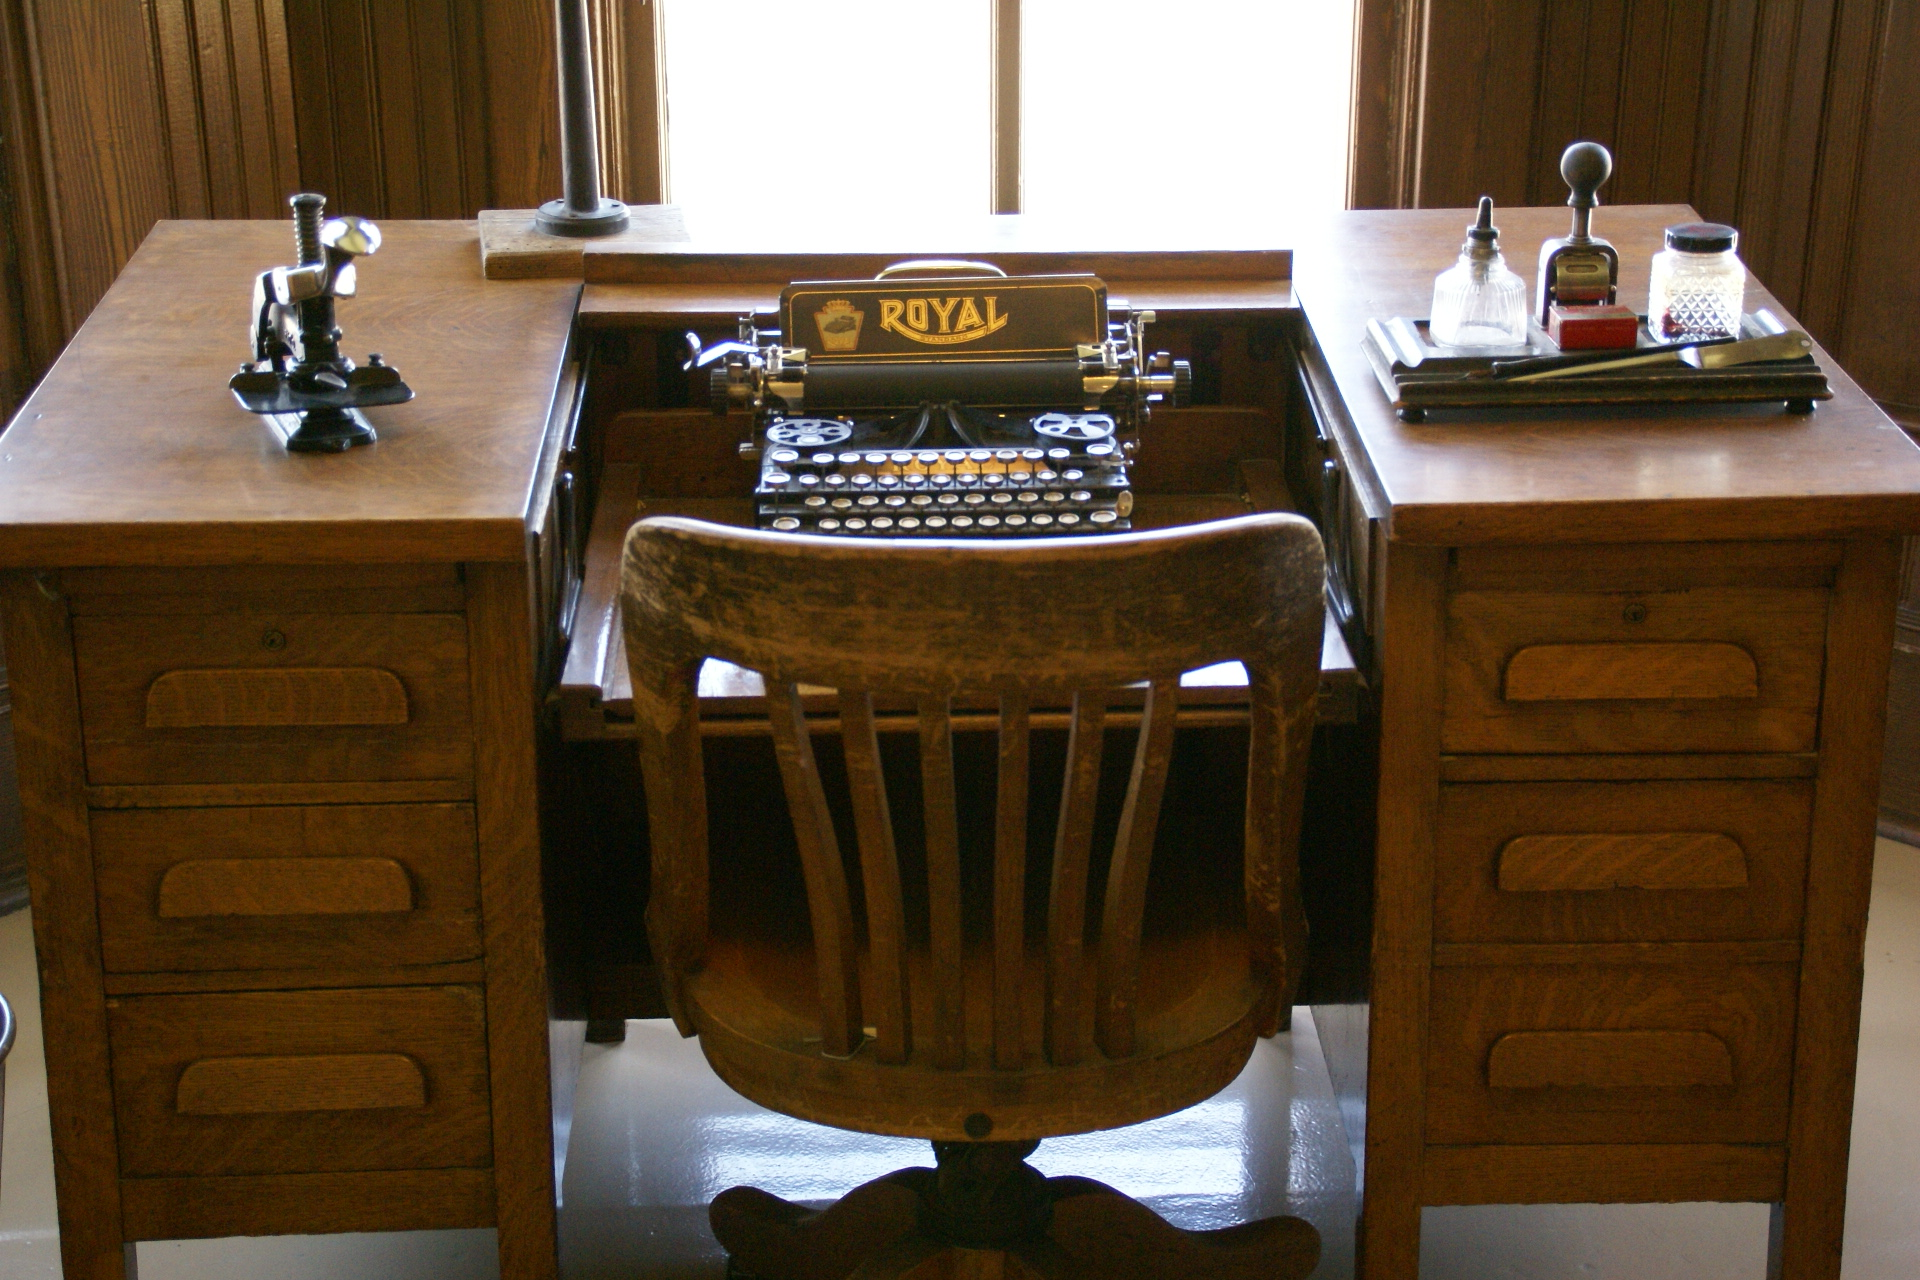 File:2012.10.03.132232 Desk typewriter train station Ely ...